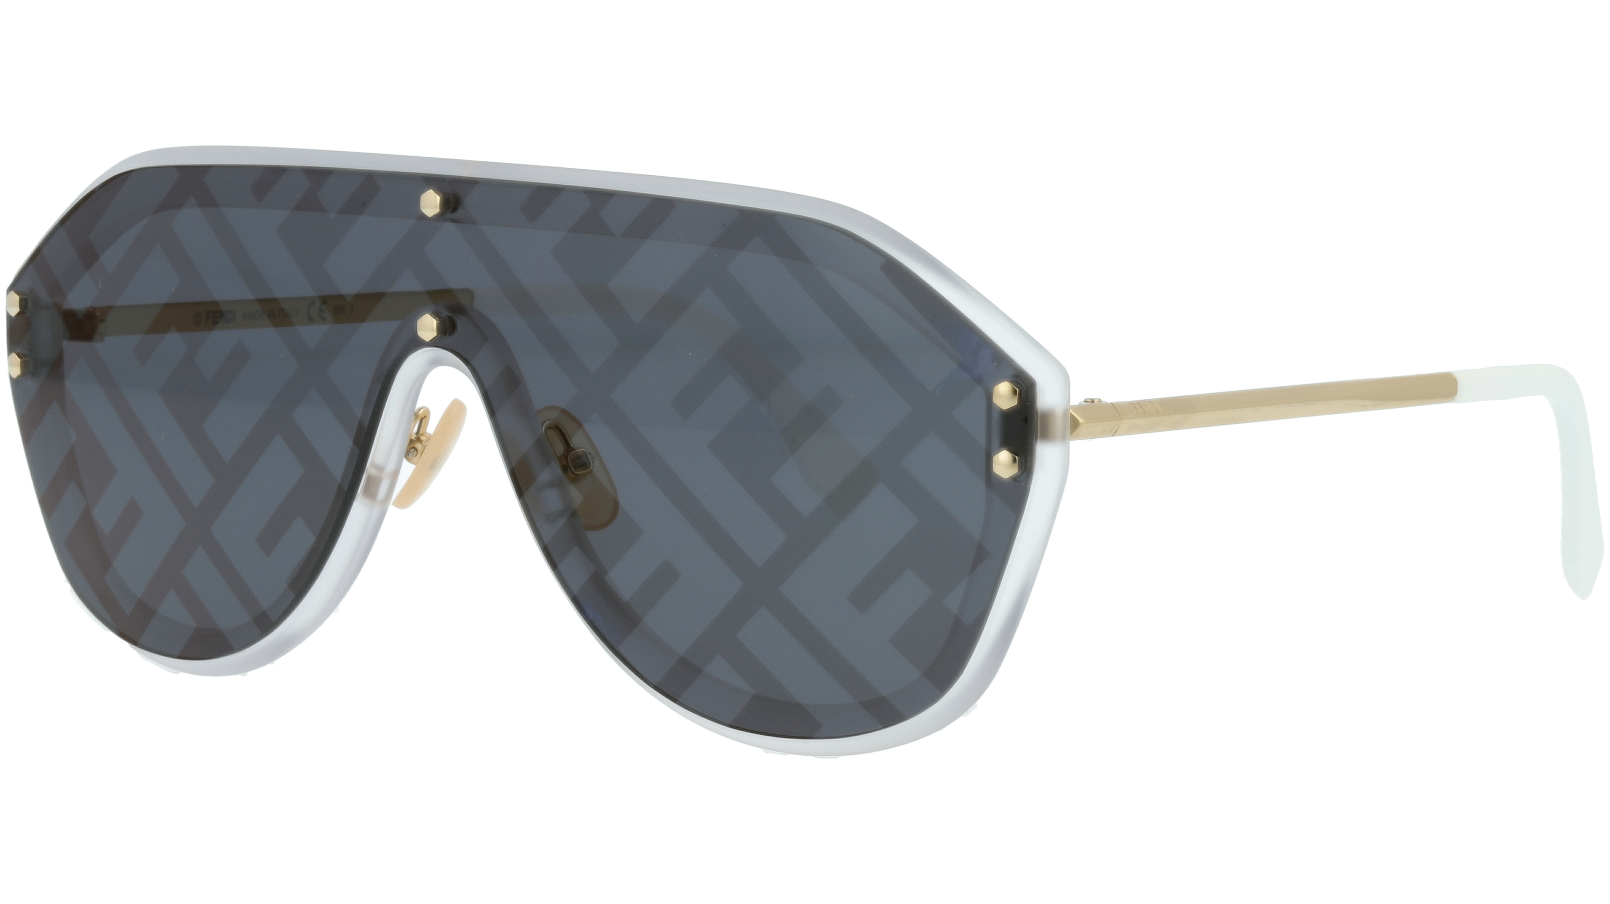 FENDI FFM0039/G/S 83I7R 99 GOLD Sunglasses